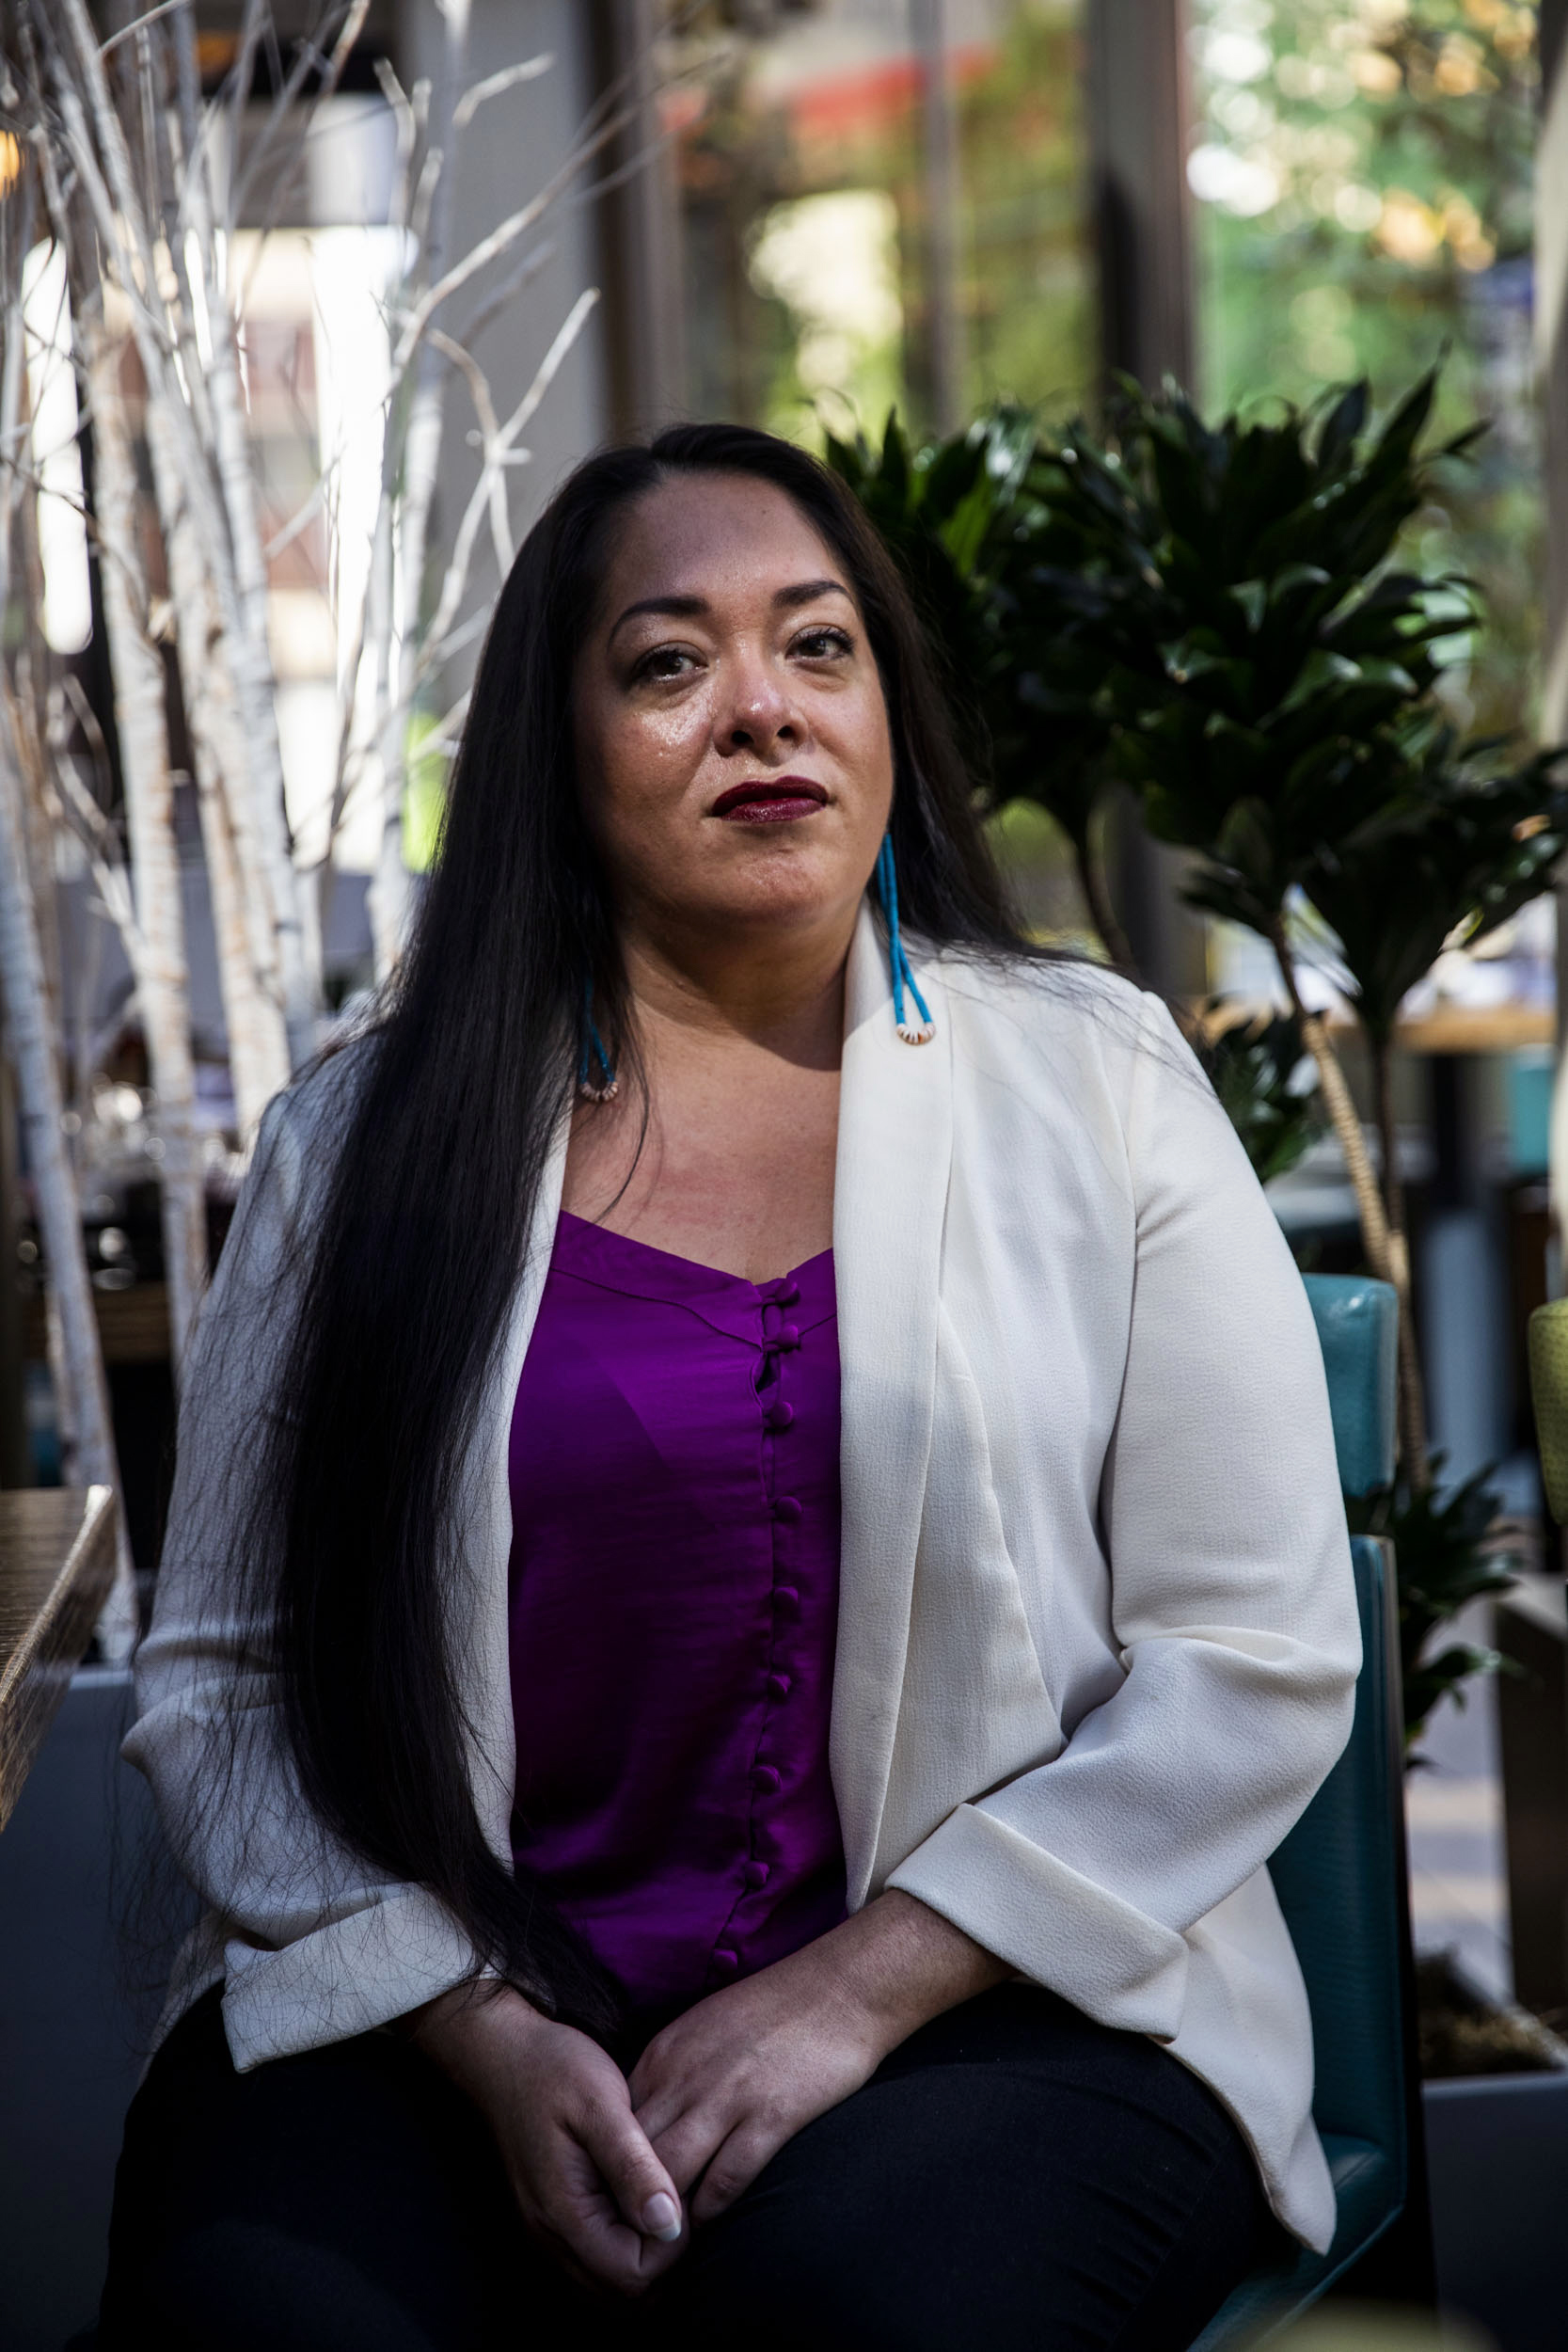 Abigail Echo-Hawk at the Westin in Seattle on May 29, 2019. Echo-Hawk is the chief research officer for the Seattle Indian Health Board and the director of the Urban Indian Health Institute. (Photo by Dorothy Edwards/Crosscut)